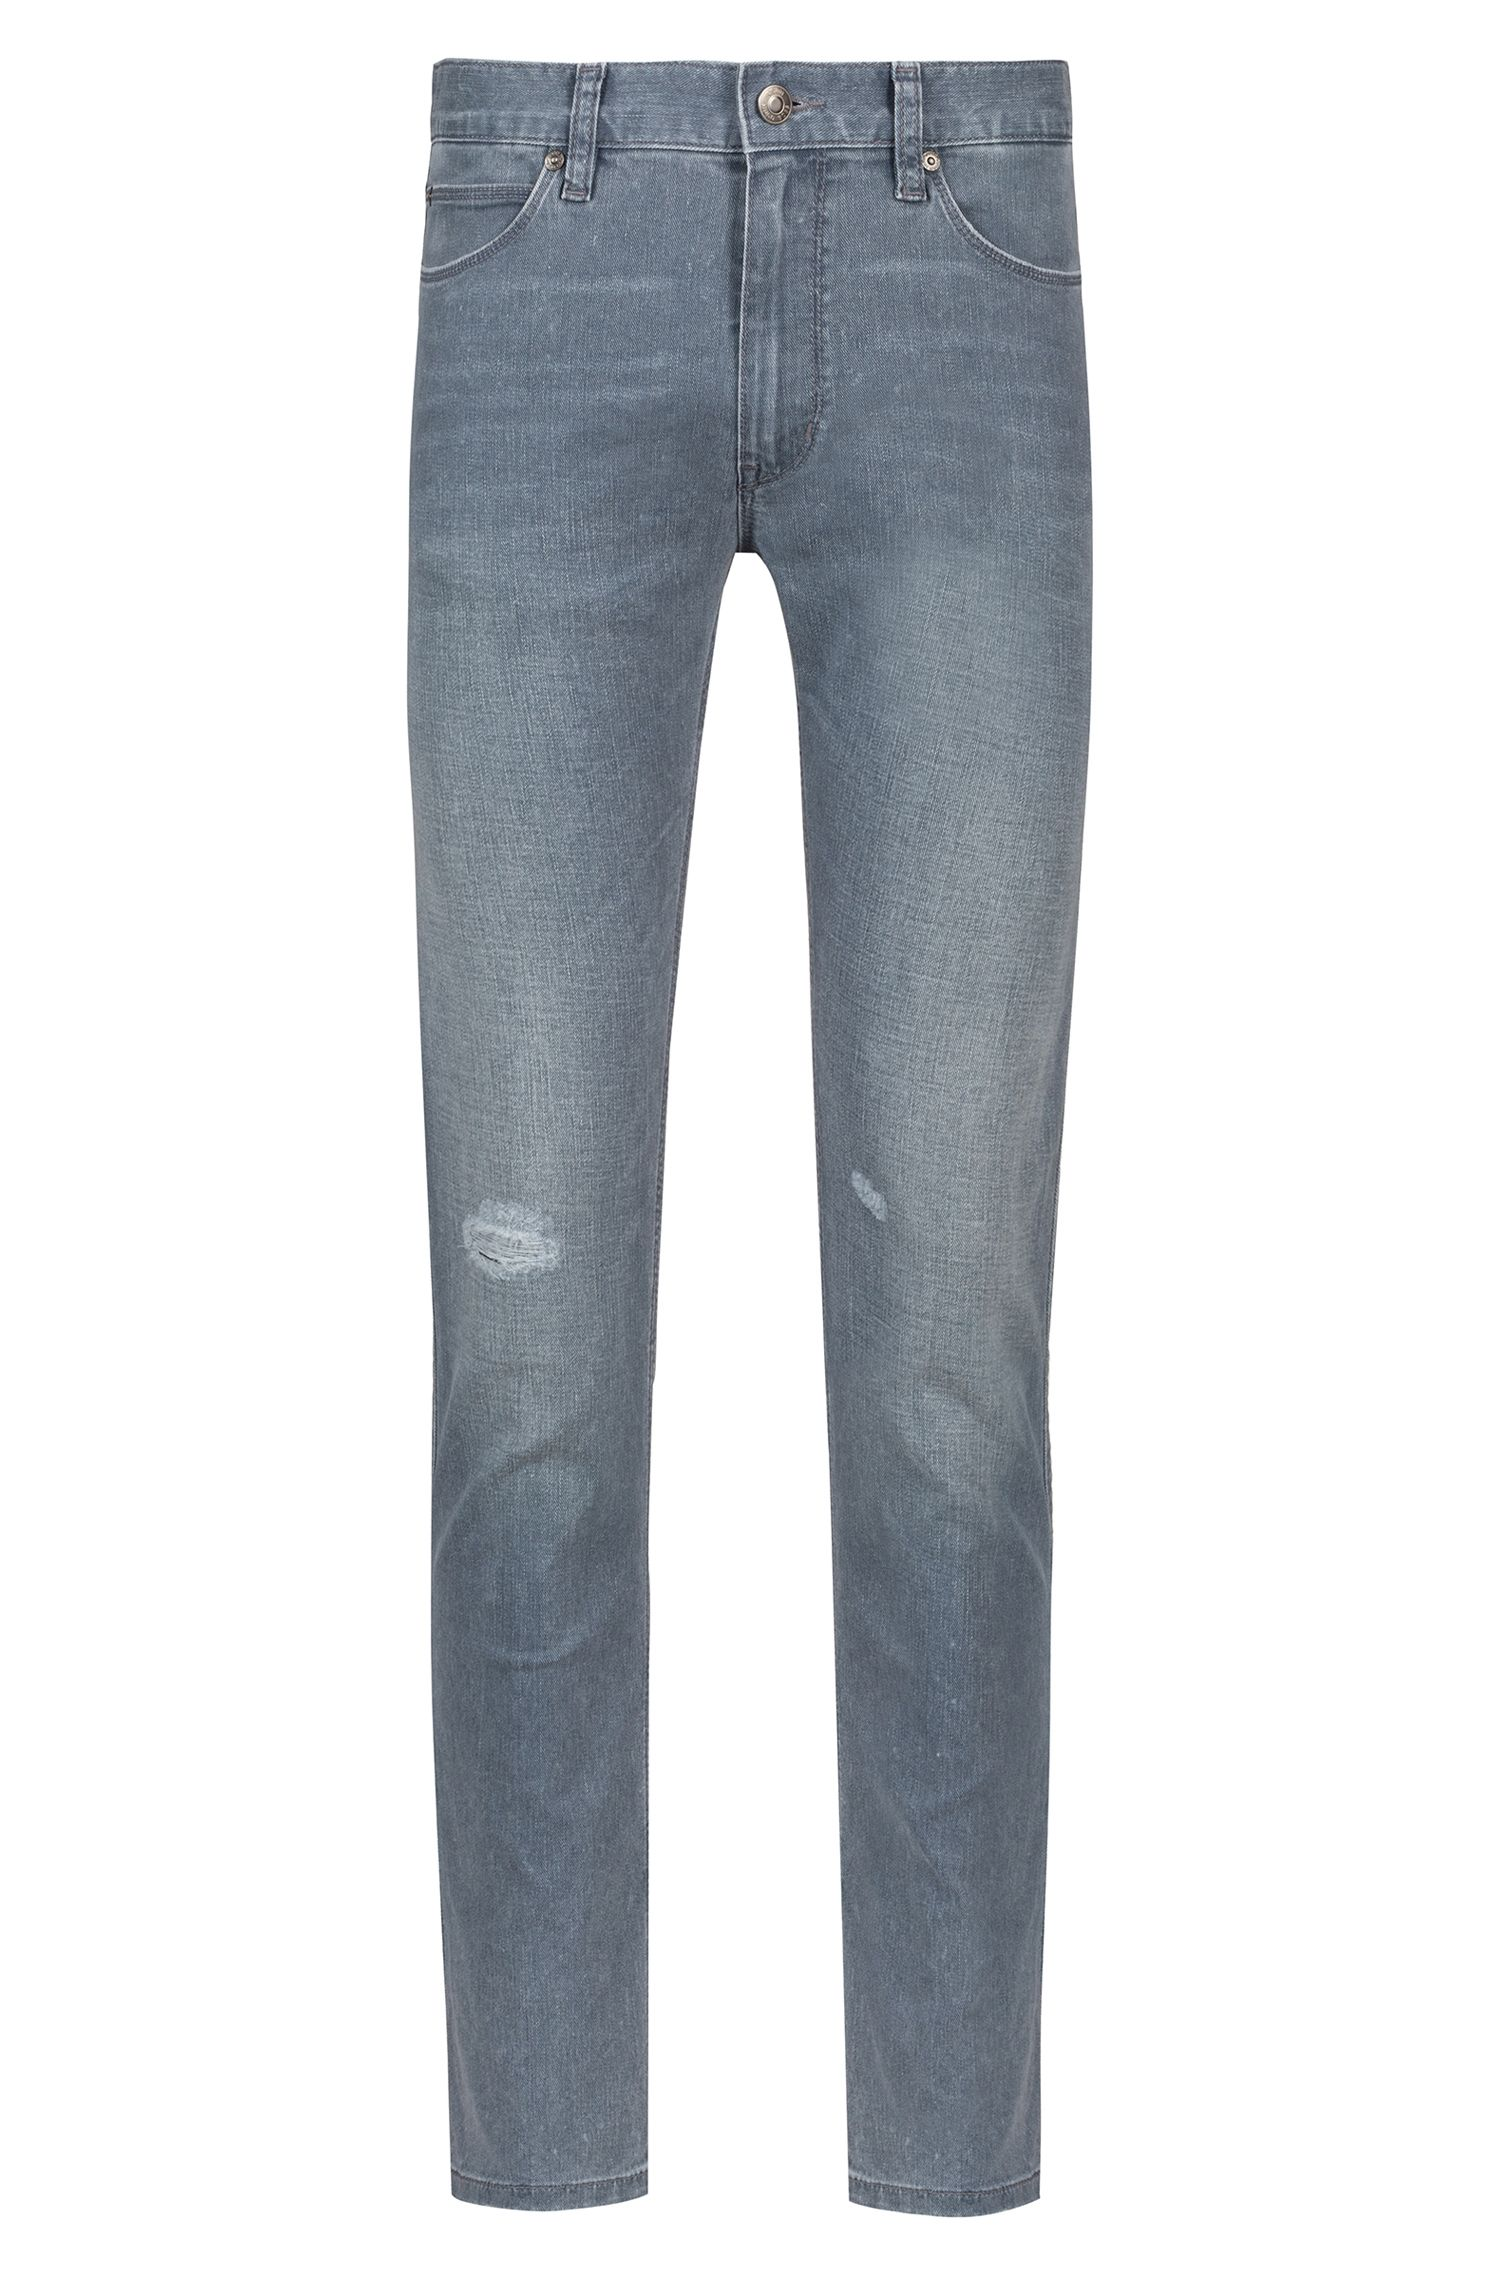 Skinny-Fit Jeans aus Stretch-Denim in Used-Optik, Grau